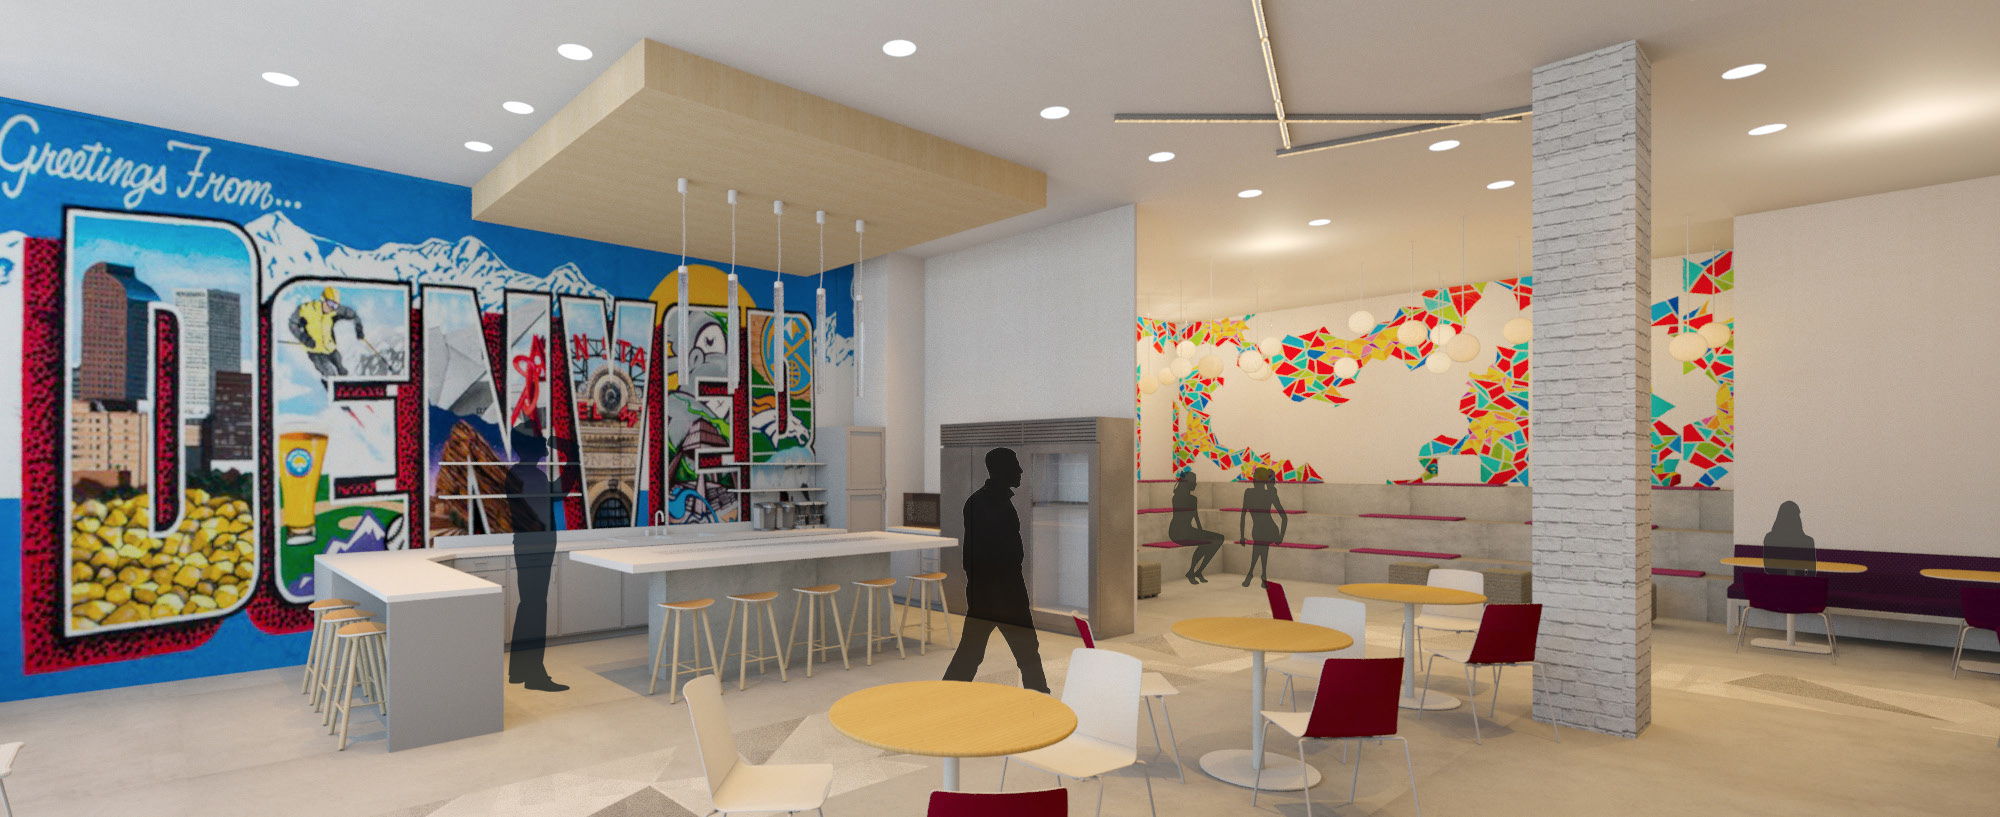 The cafe and other common areas incorporate local art to enhance productivity and help people feel proud of where they're from.